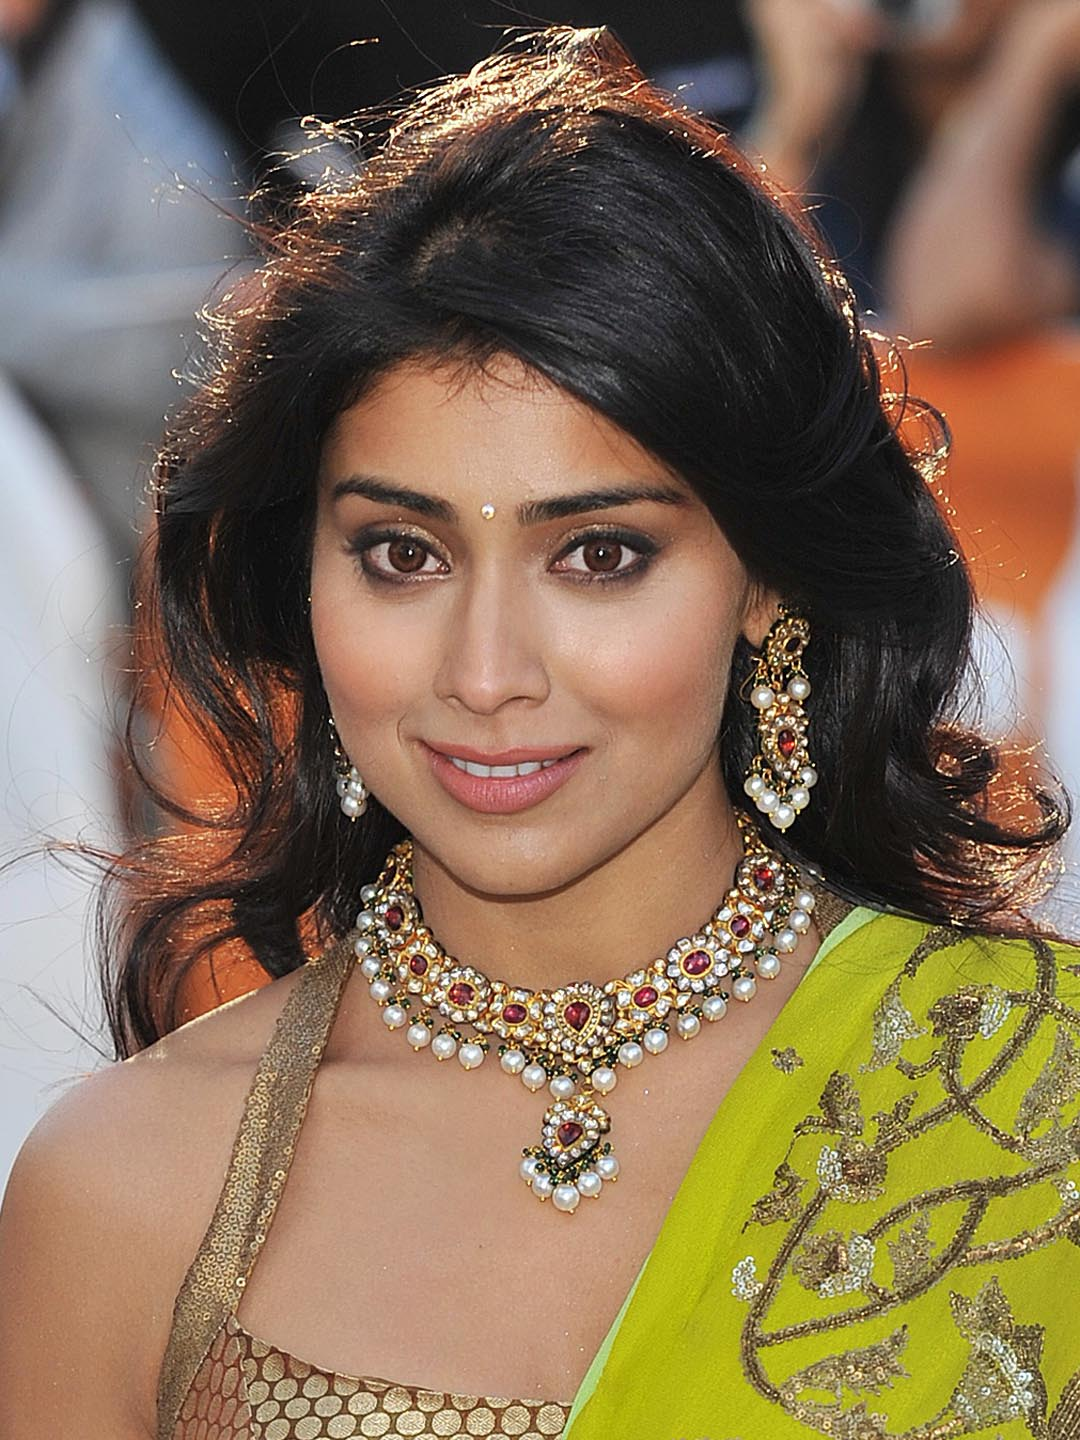 Discussion on this topic: Anupama Verma, shriya-saran/